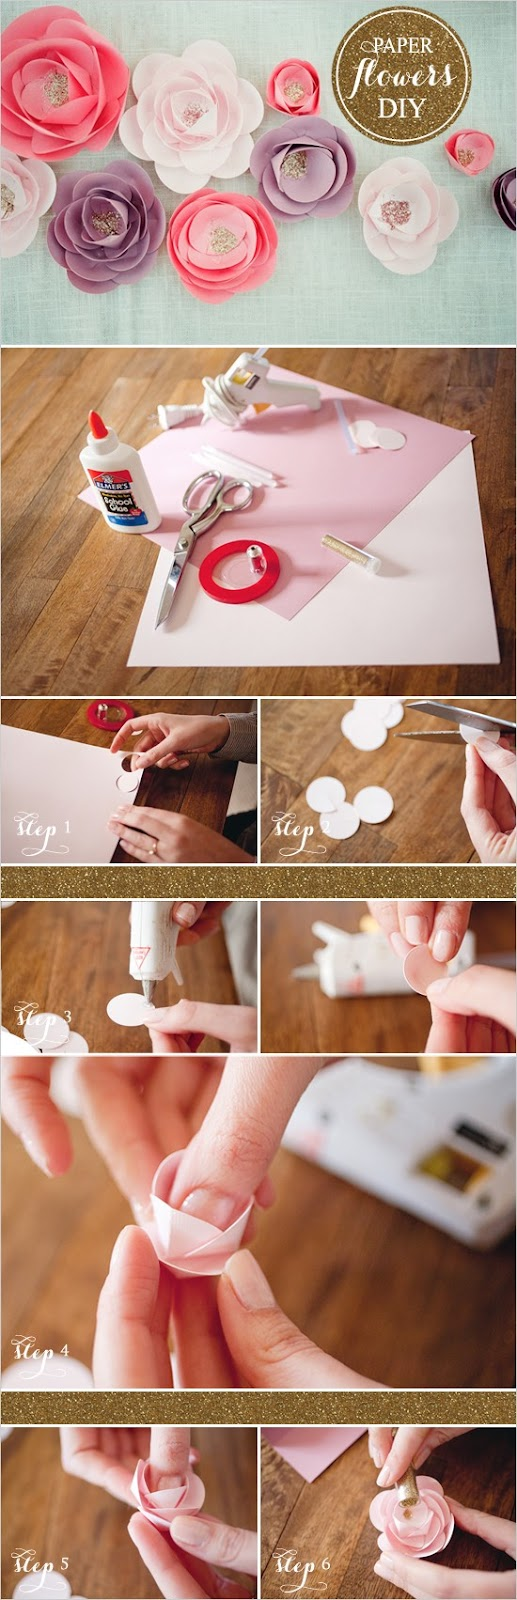 DIY glitter paper flower tutorials